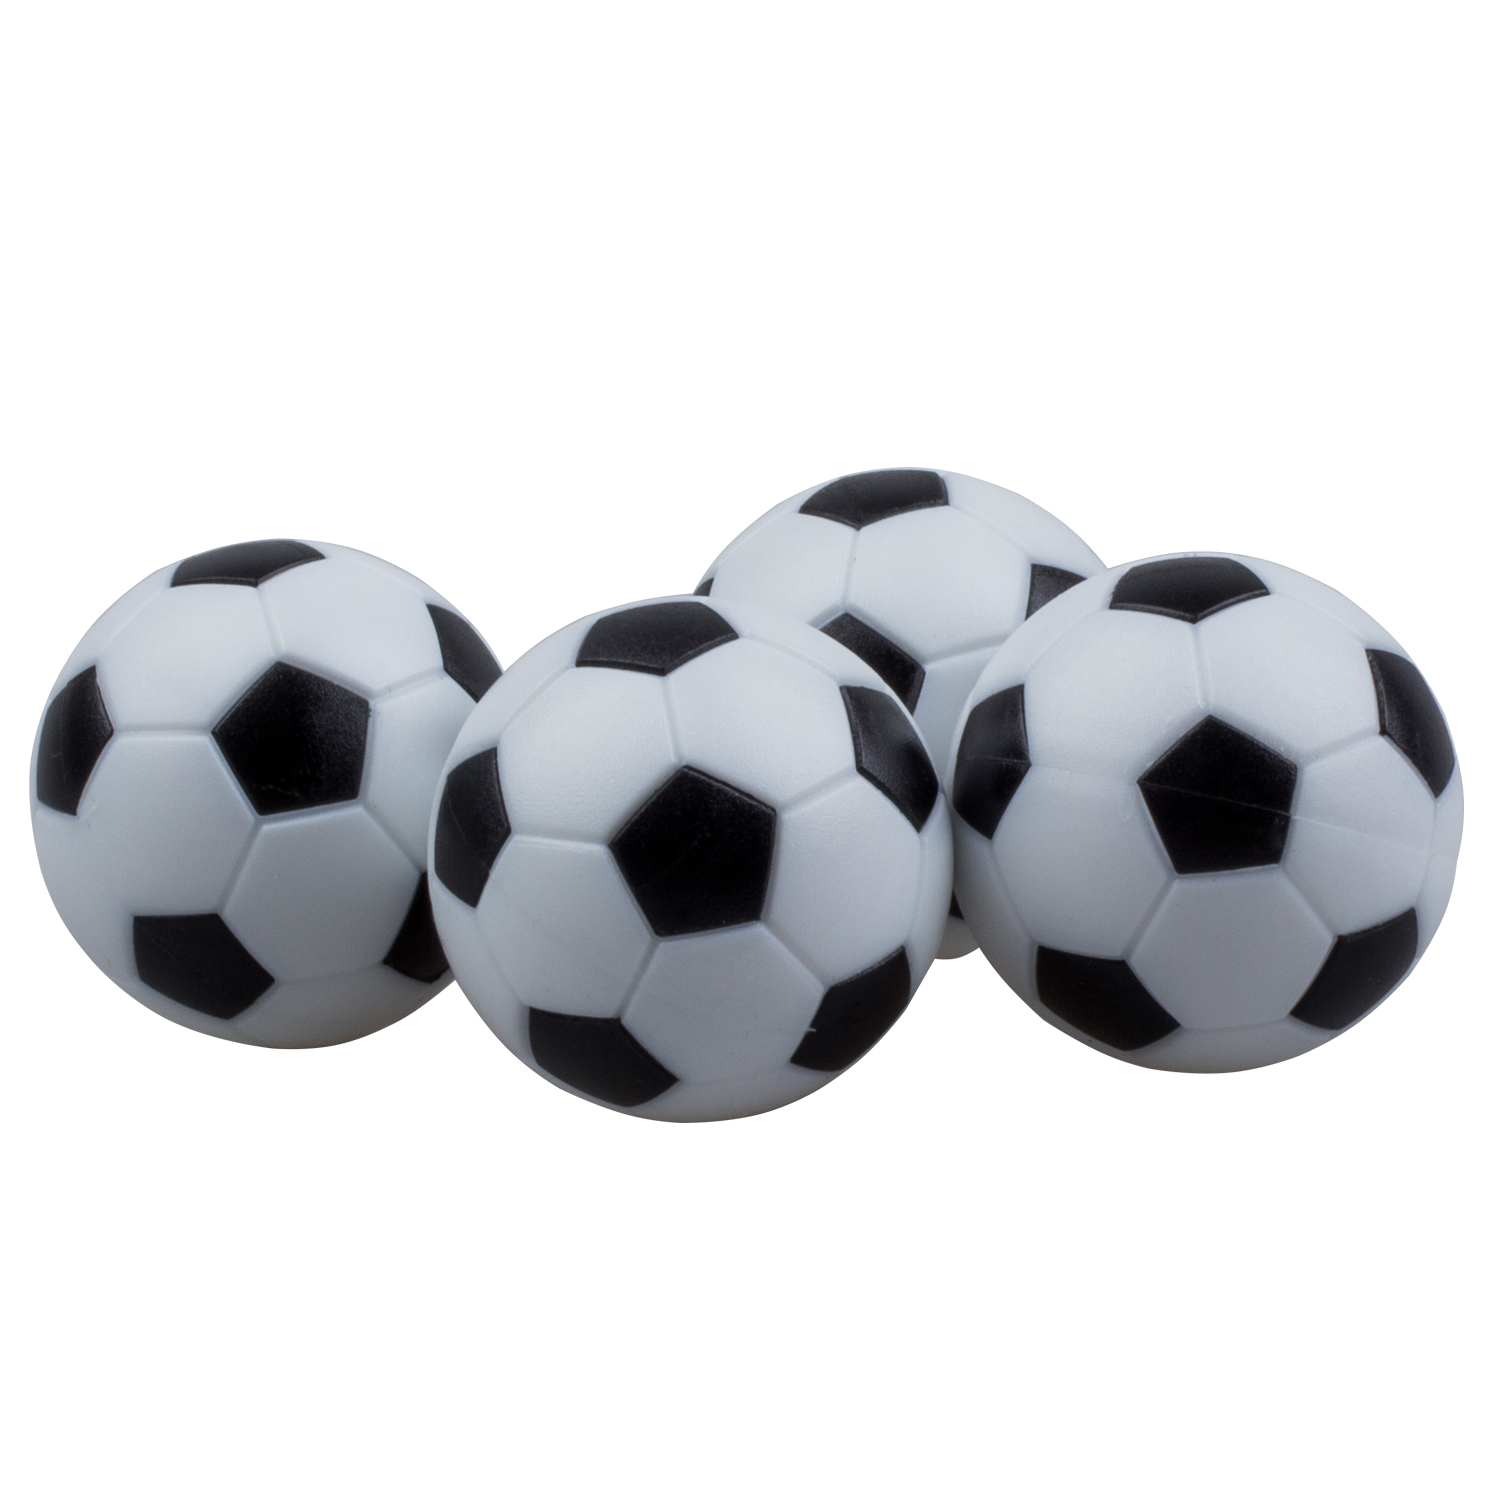 4pcs 32mm Plastic Soccer Table Foosball Ball Football